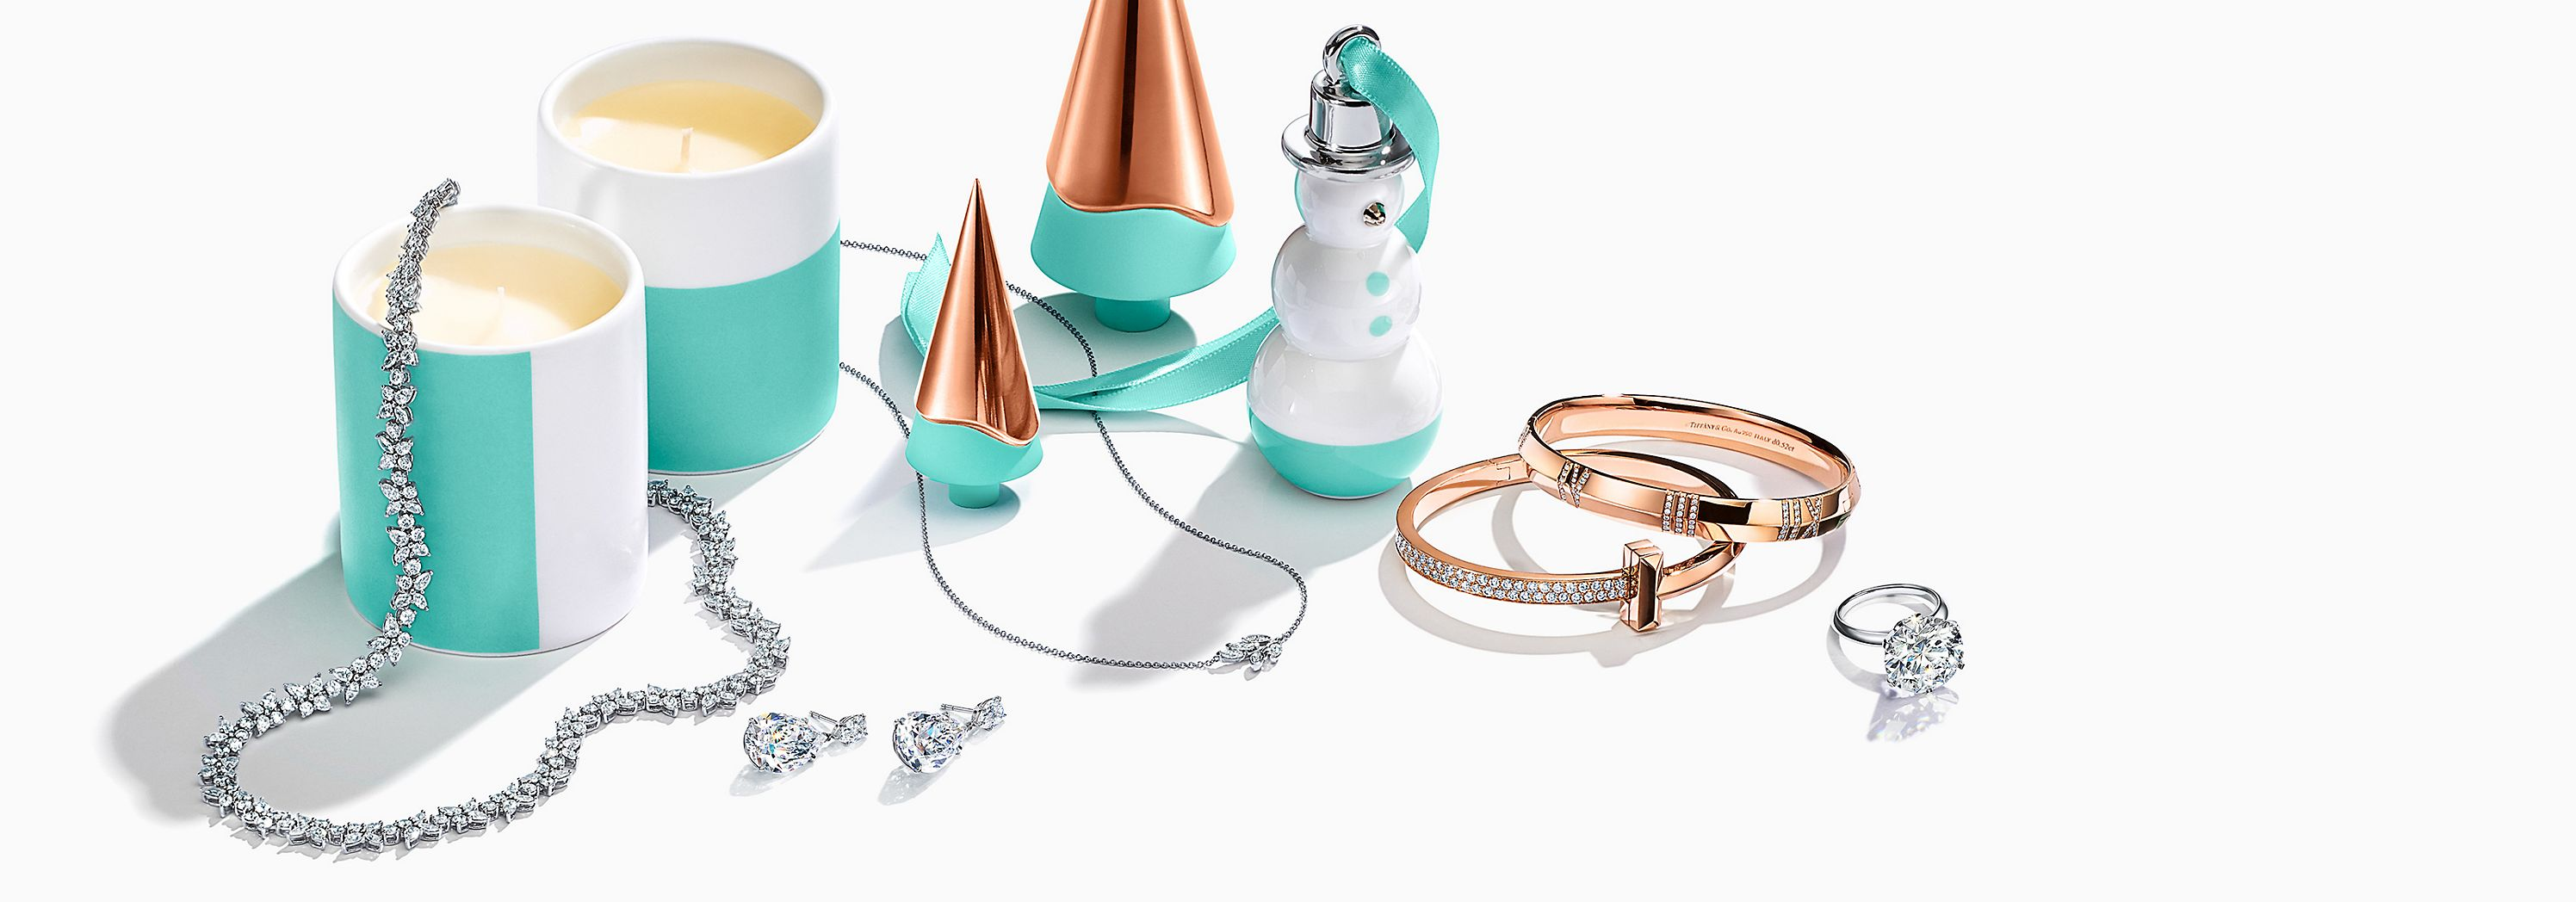 Scopri e acquista i regali di Natale Tiffany & Co.